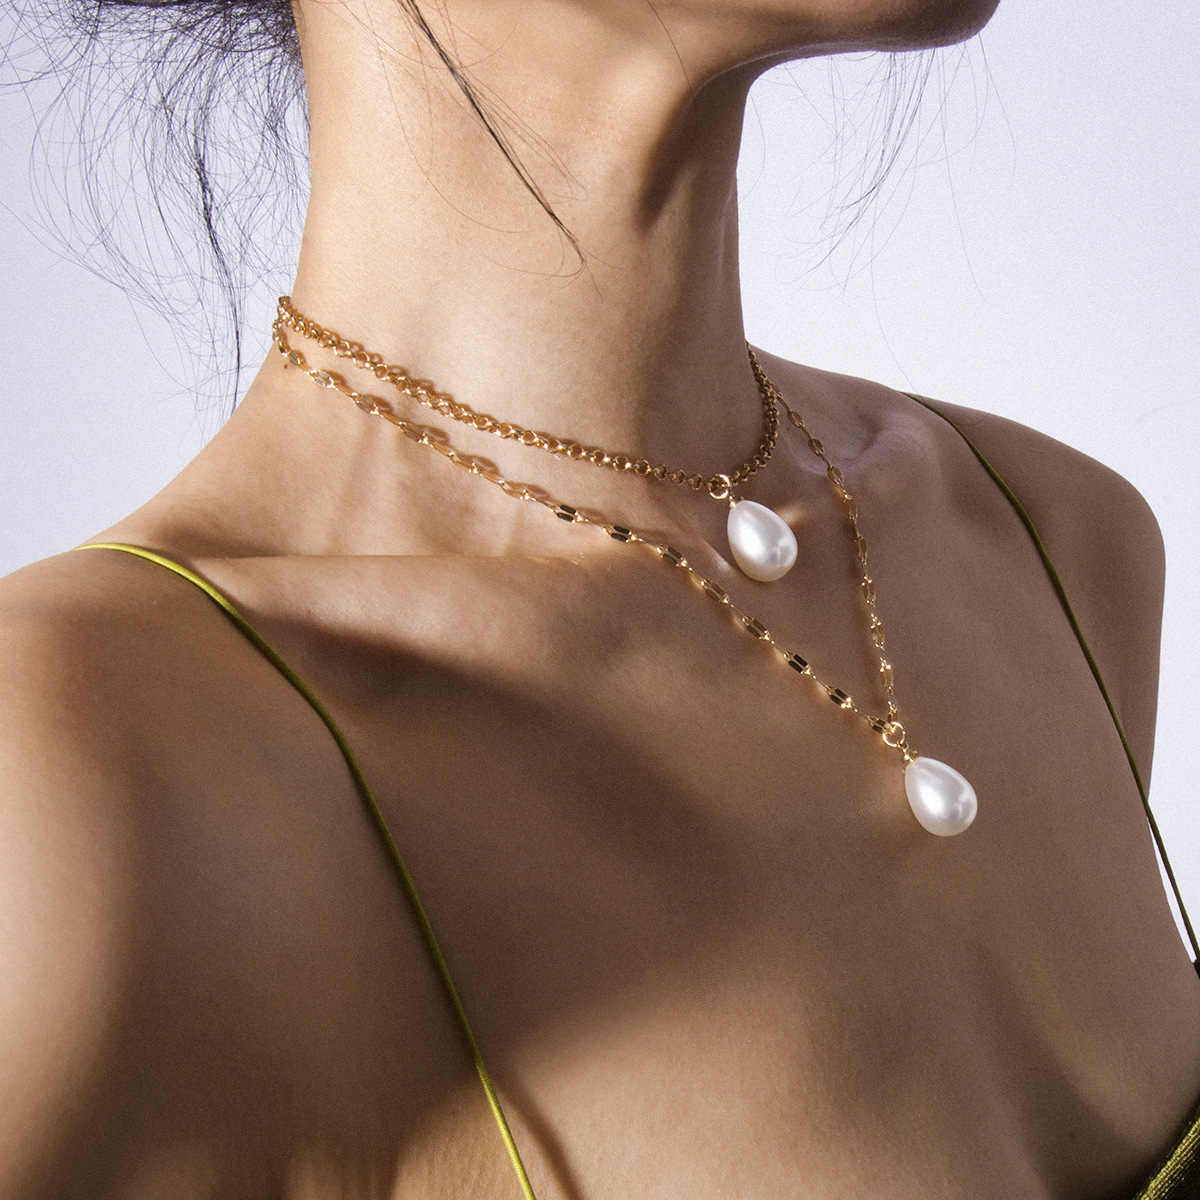 2019 ZA New Fashion Gold Color Multilayer Chains Pearl Necklaces Geometric Crystal Pendants Necklaces For Women Bijoux